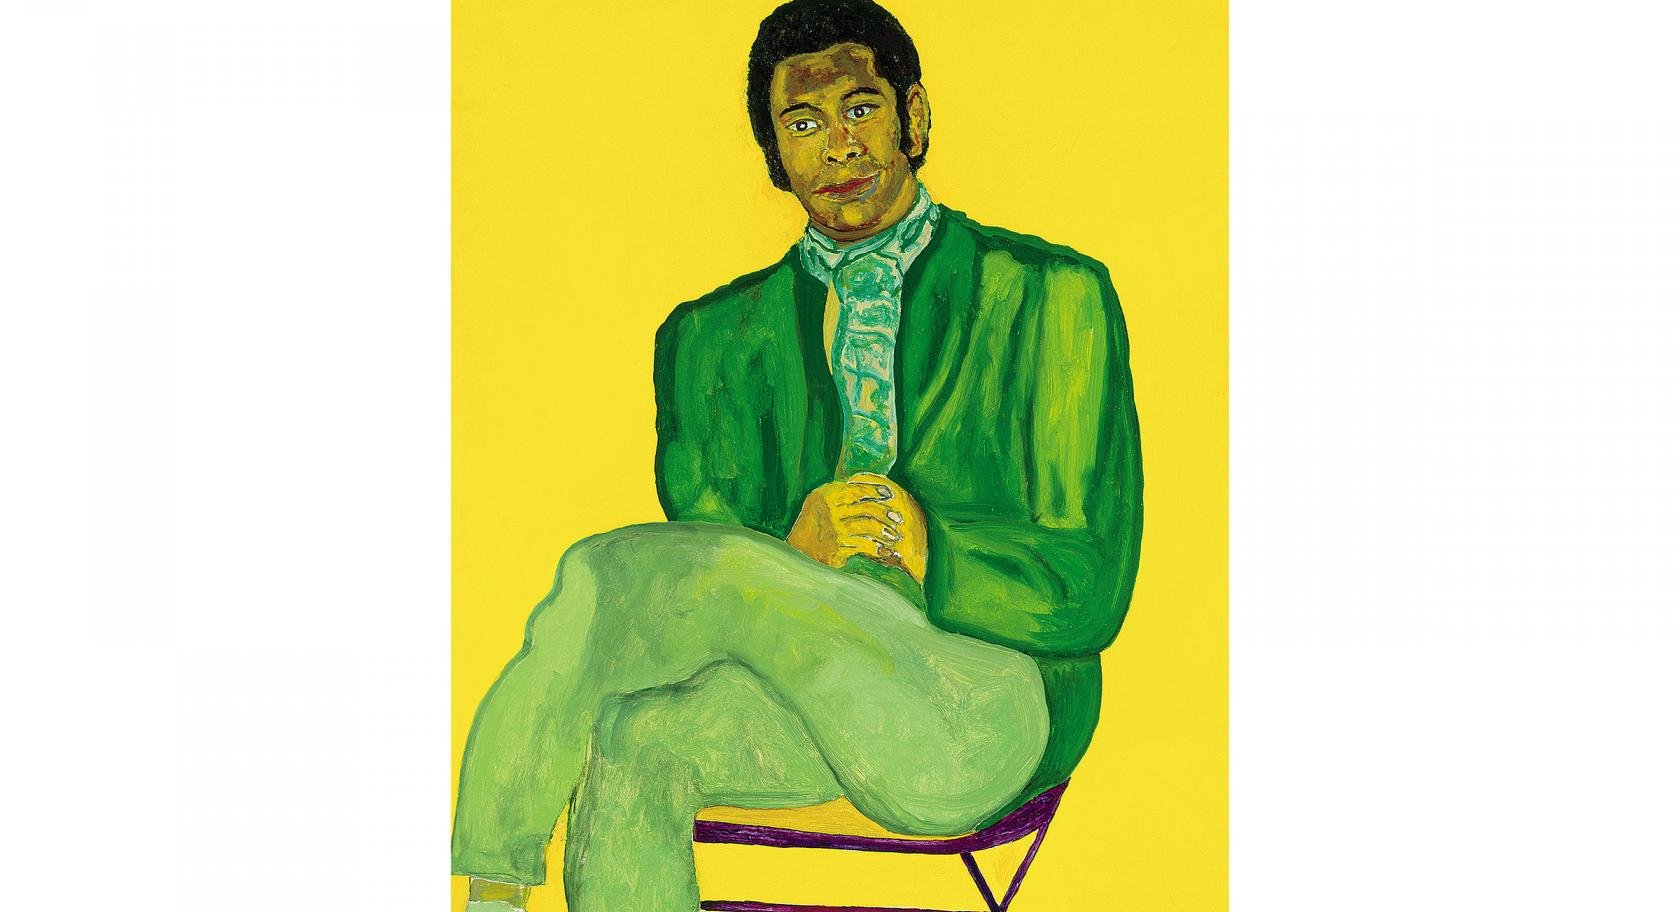 Beauford Delaney, Portrait of a Young Musician, 1970